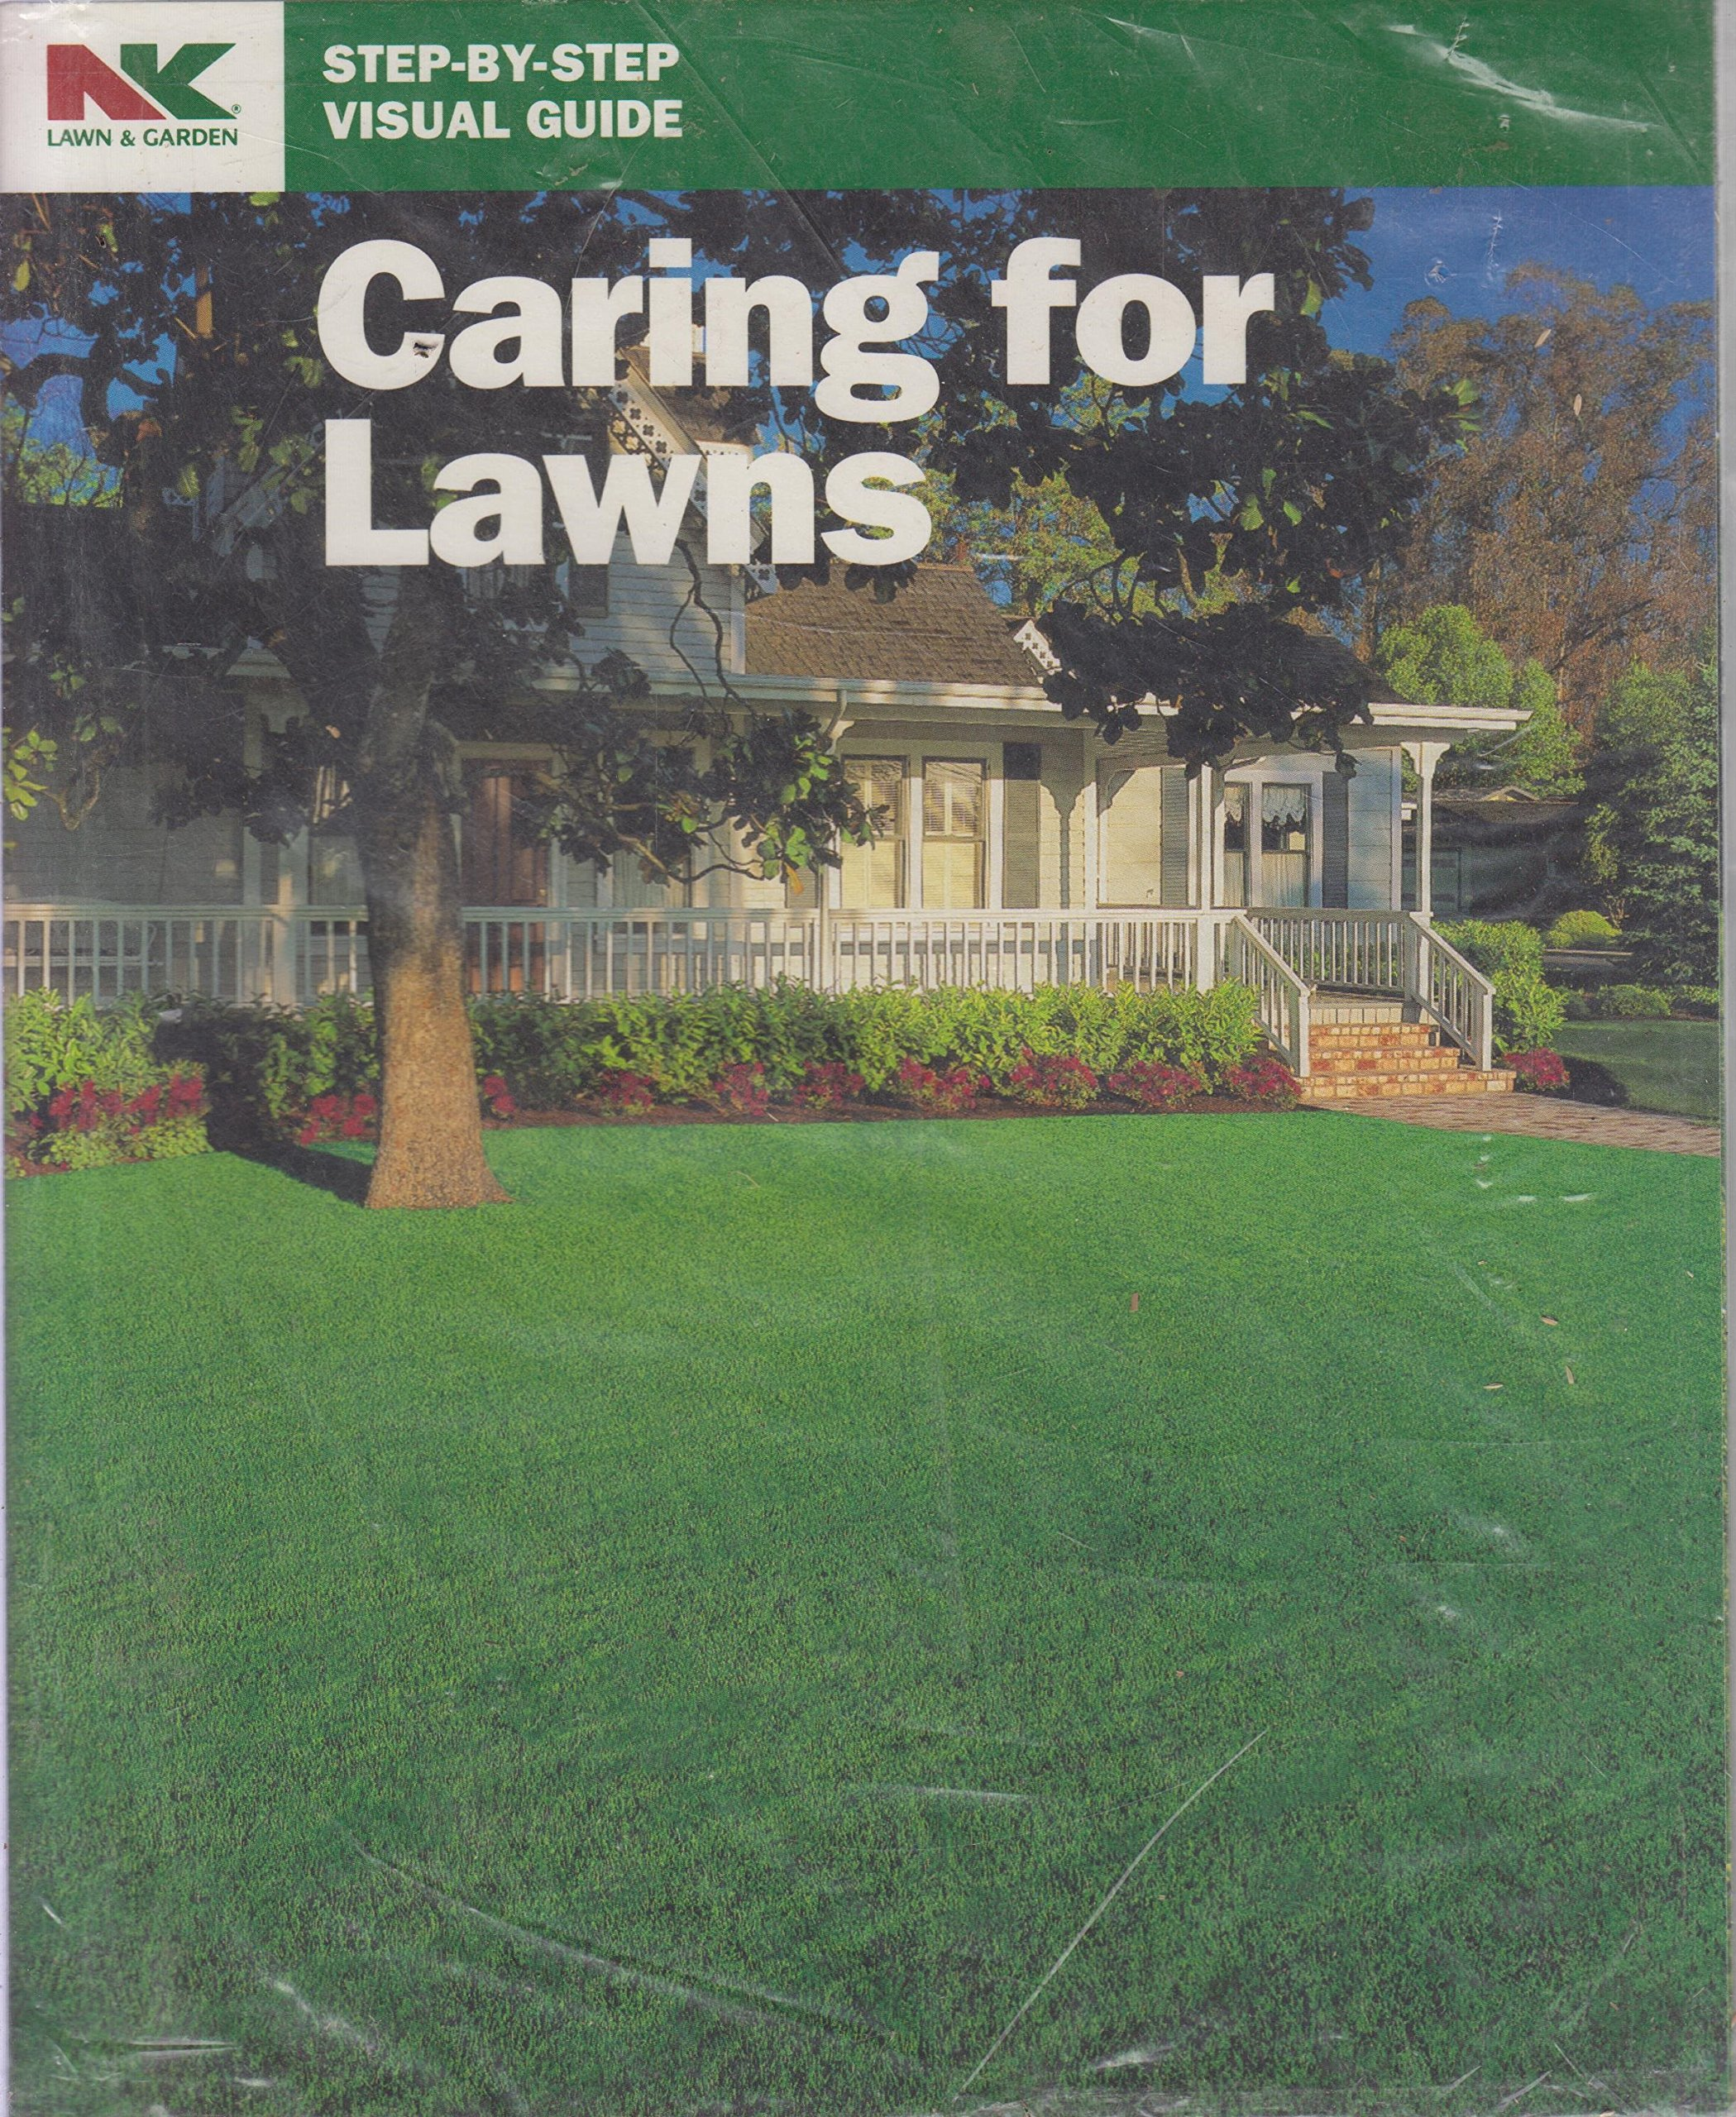 Caring for Lawns (Step-By-Step Visual Guide)